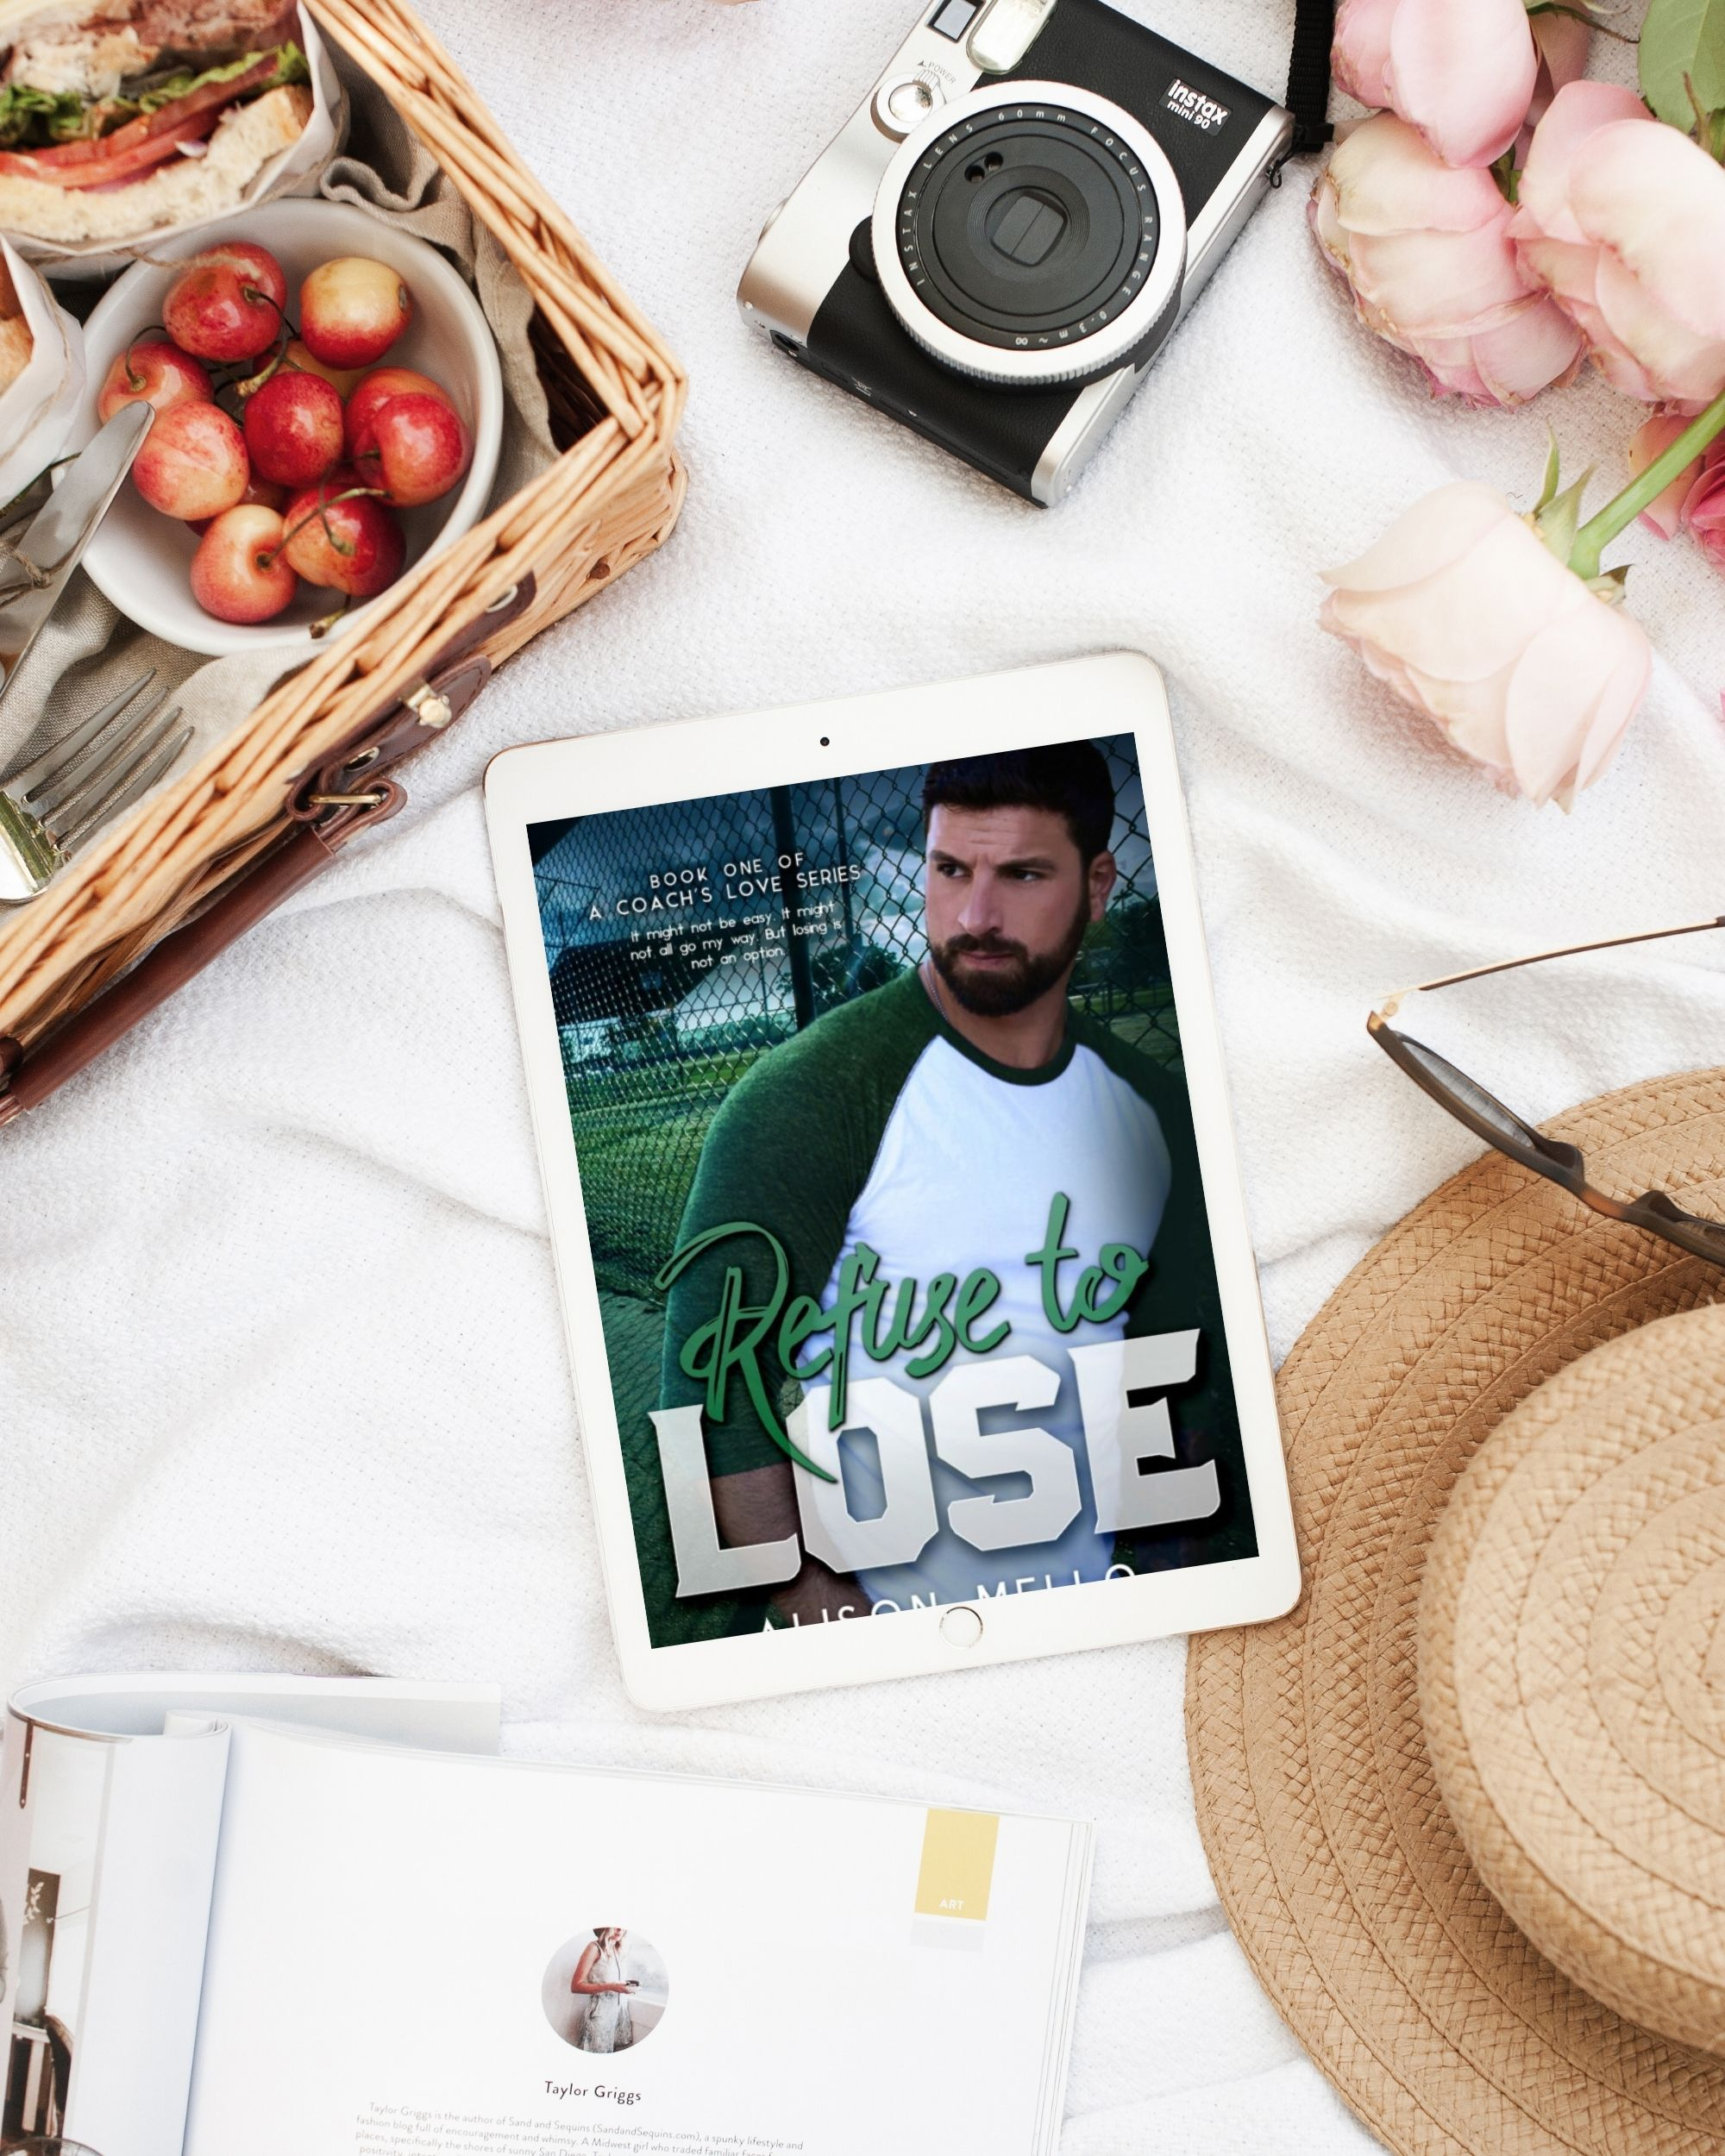 Refuse to Lose by Alison Mello at Wickedly Romance